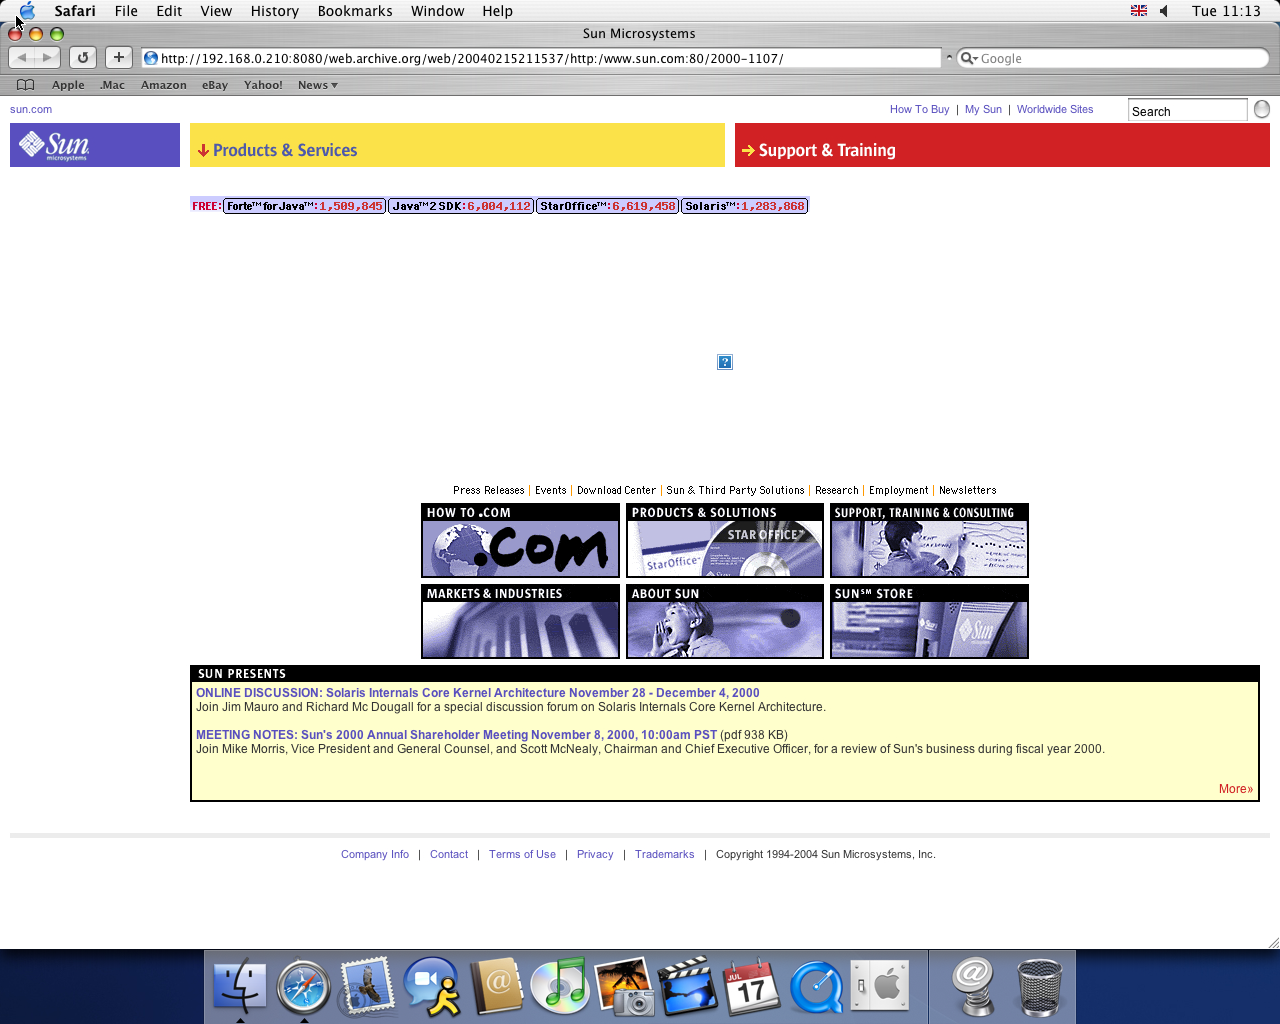 OS X 10.3 PPC with Safari 1.1 displaying a page from Sun Microsystems archived at February 15, 2004 at 21:15:37